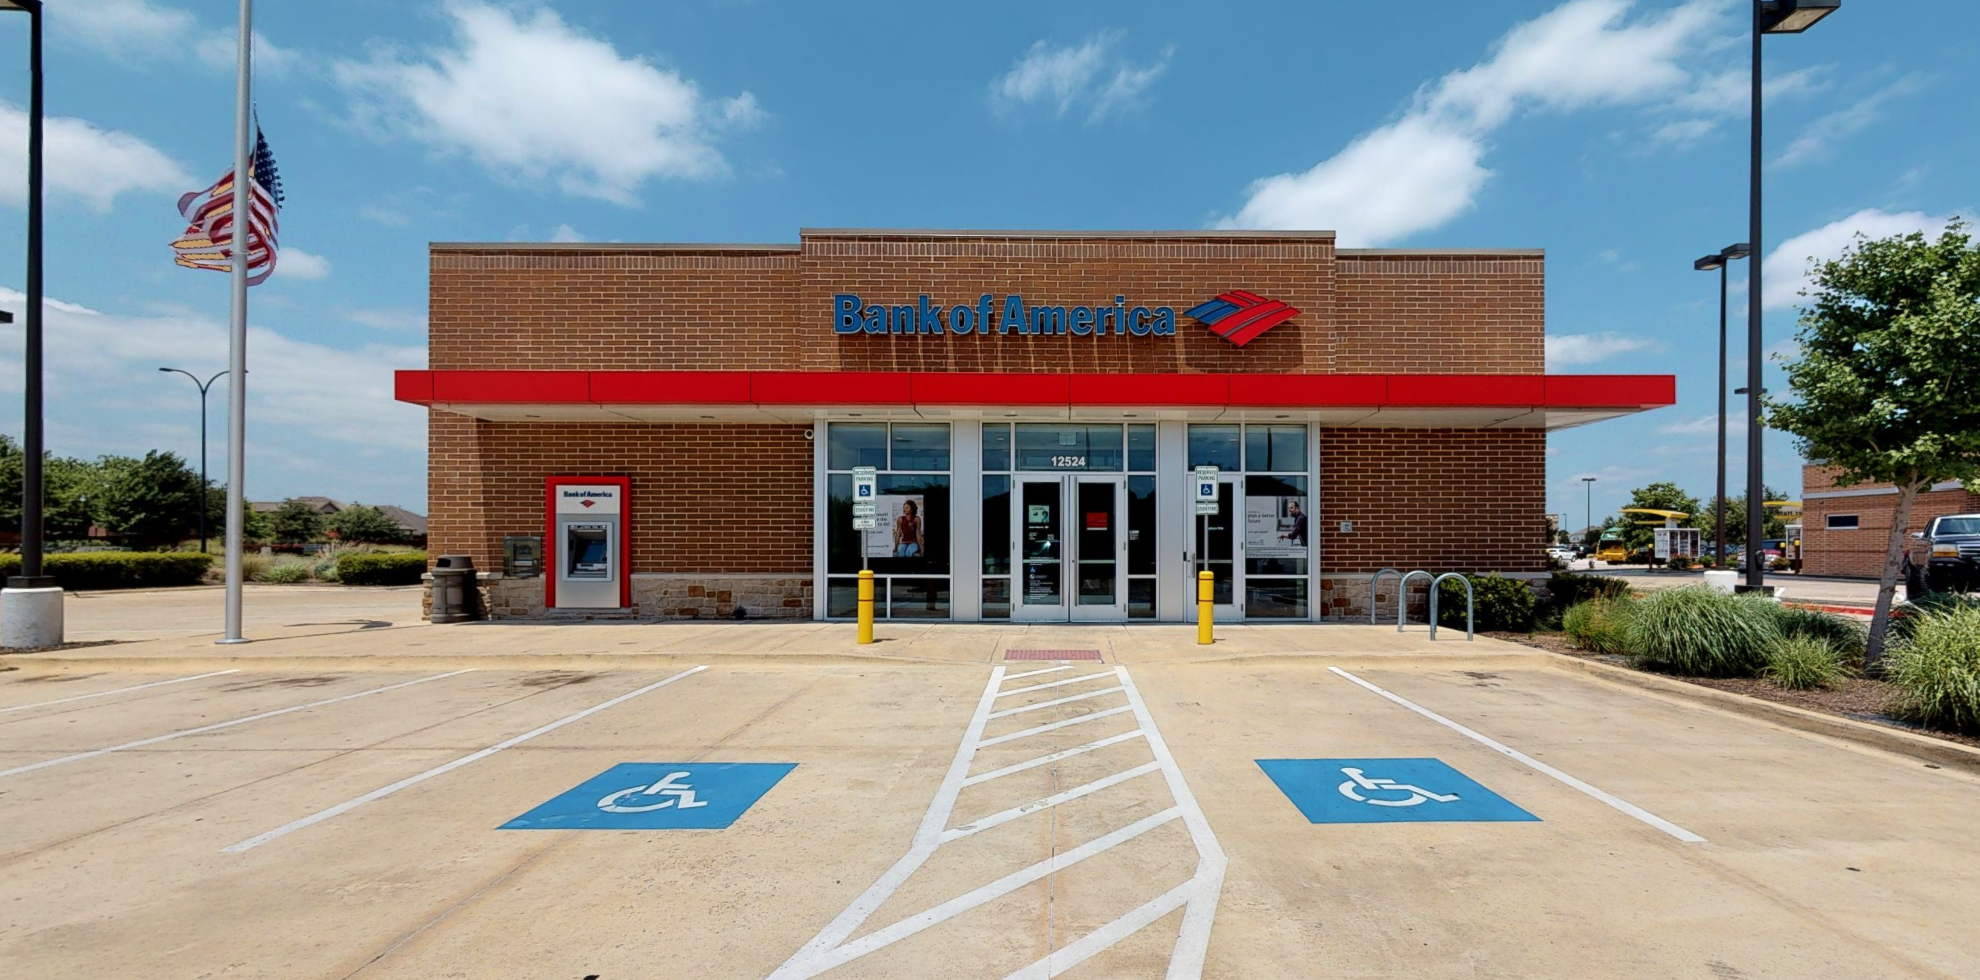 Bank of America financial center with drive-thru ATM   12524 N Beach St, Fort Worth, TX 76244